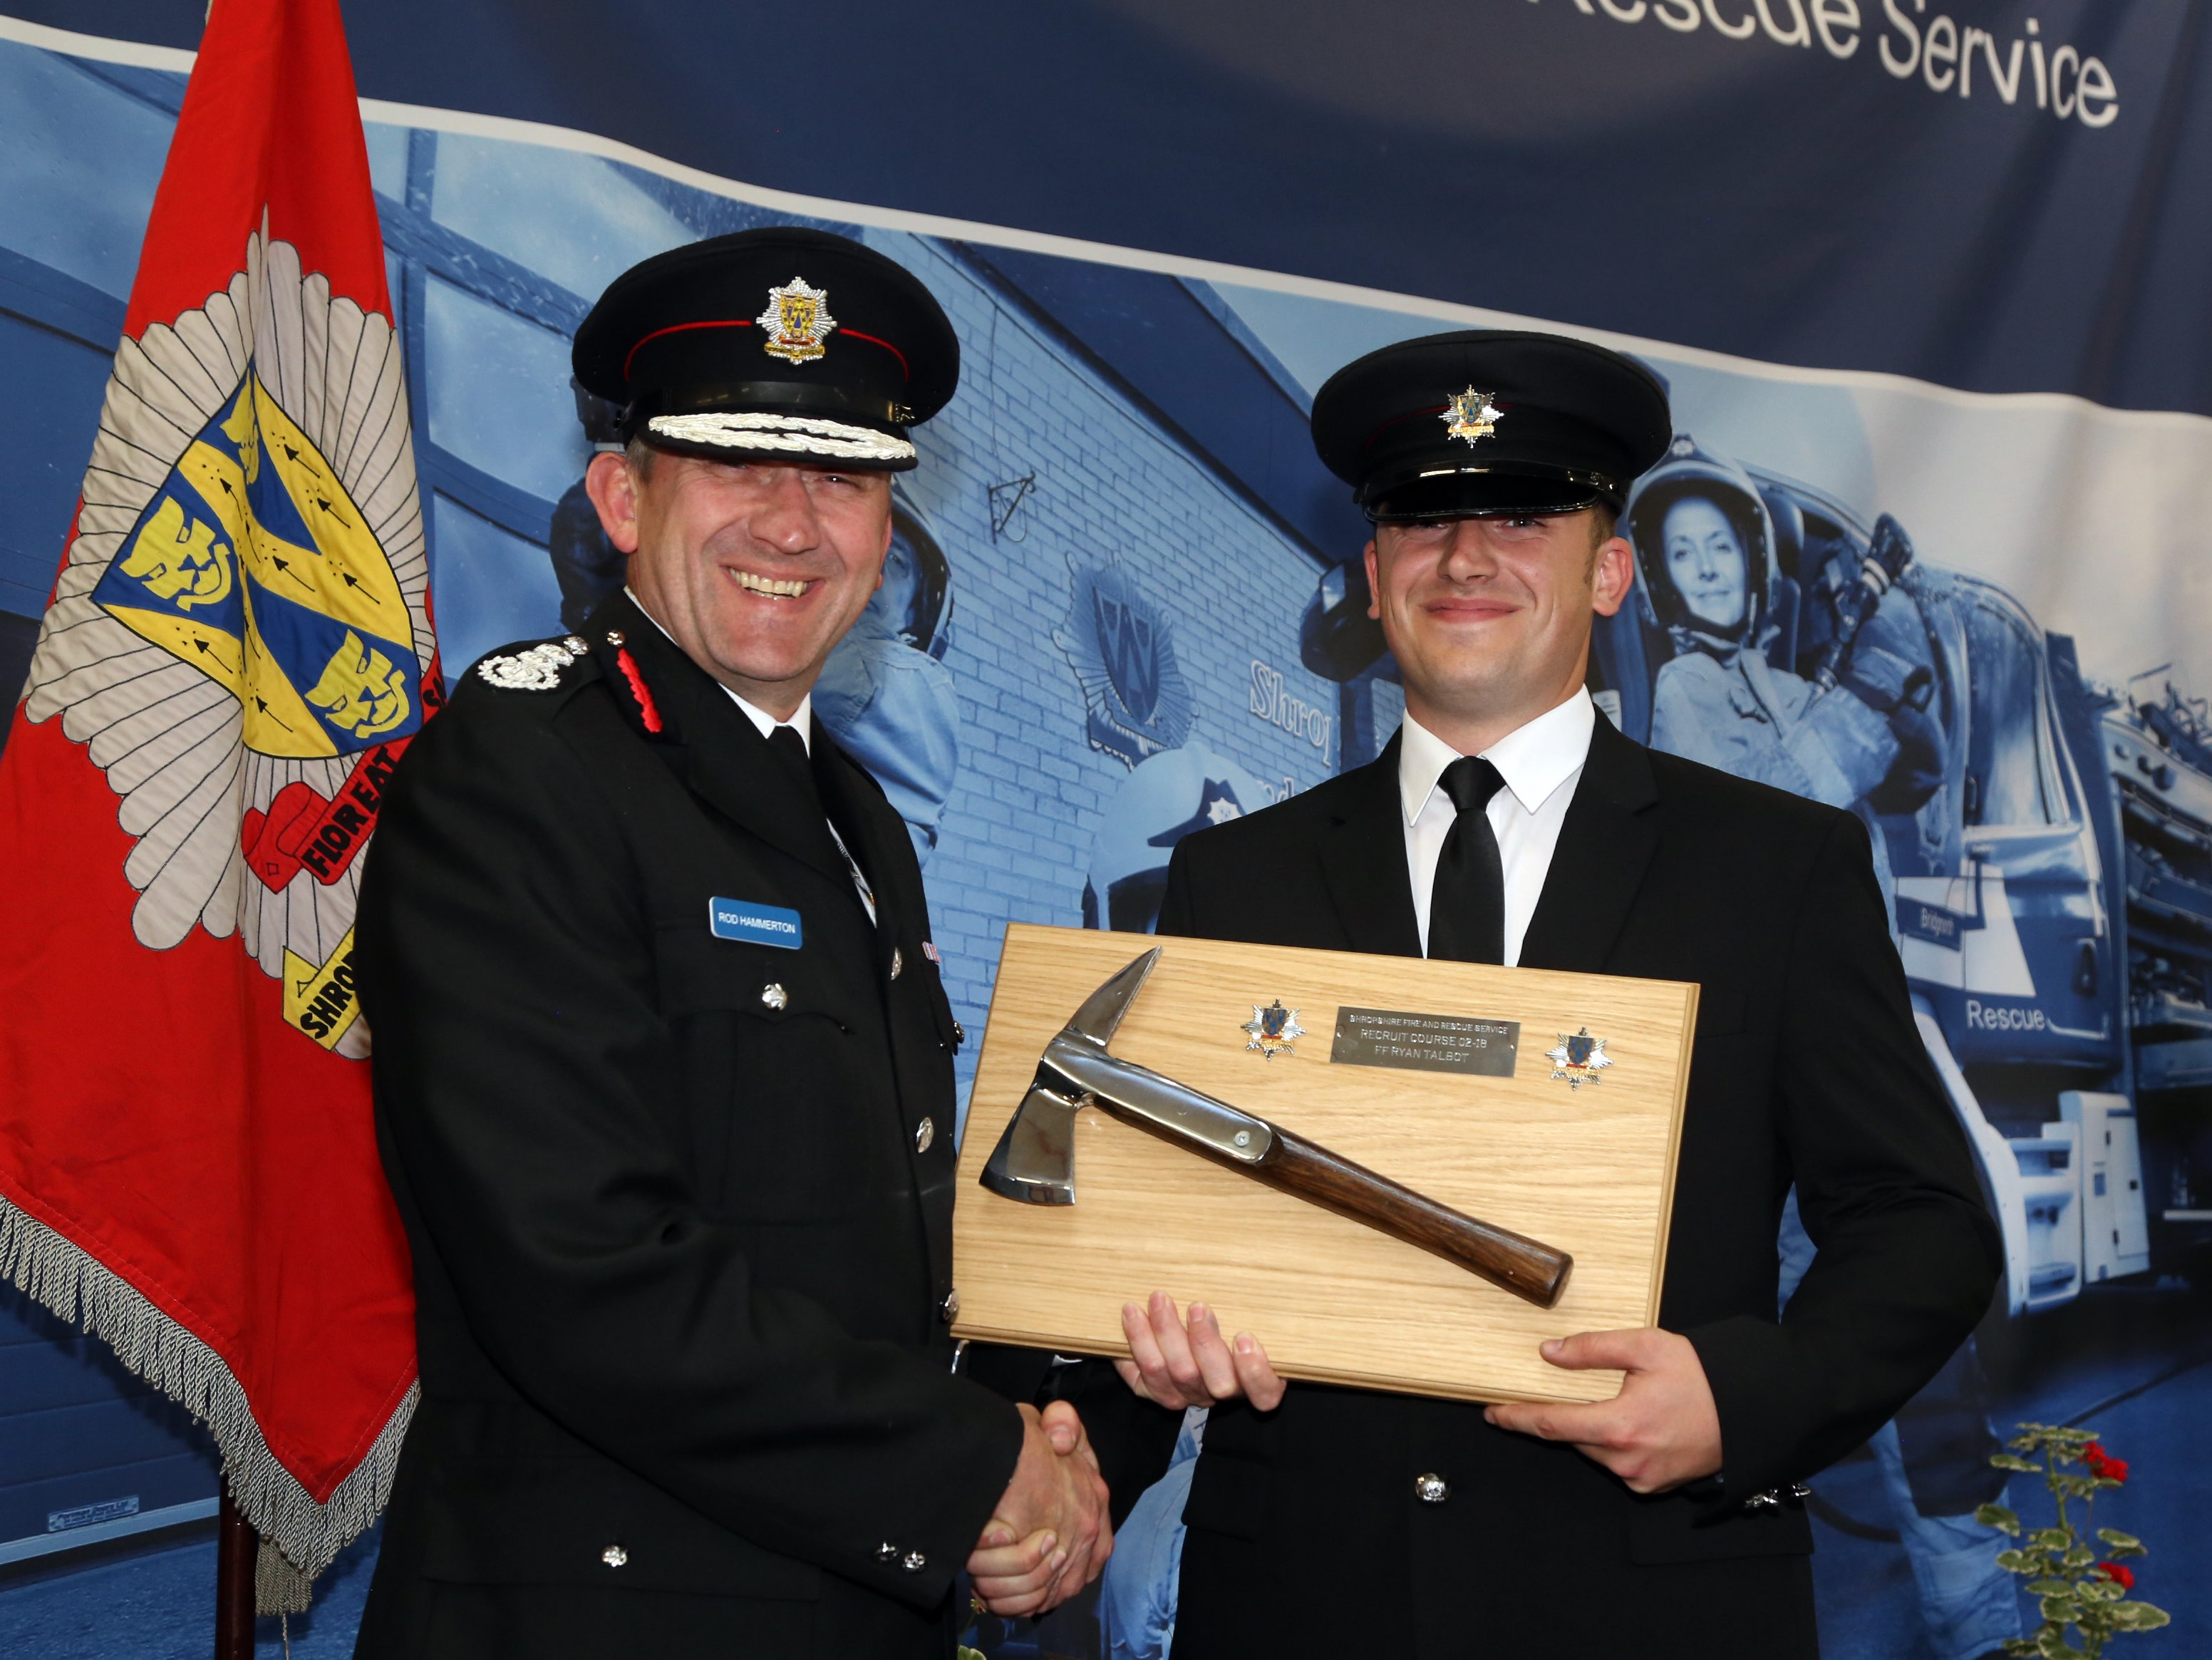 Telford firefighter Ryan Talbot receives the Silver Axe award for top student from Chief Fire Officer Rod Hammerton